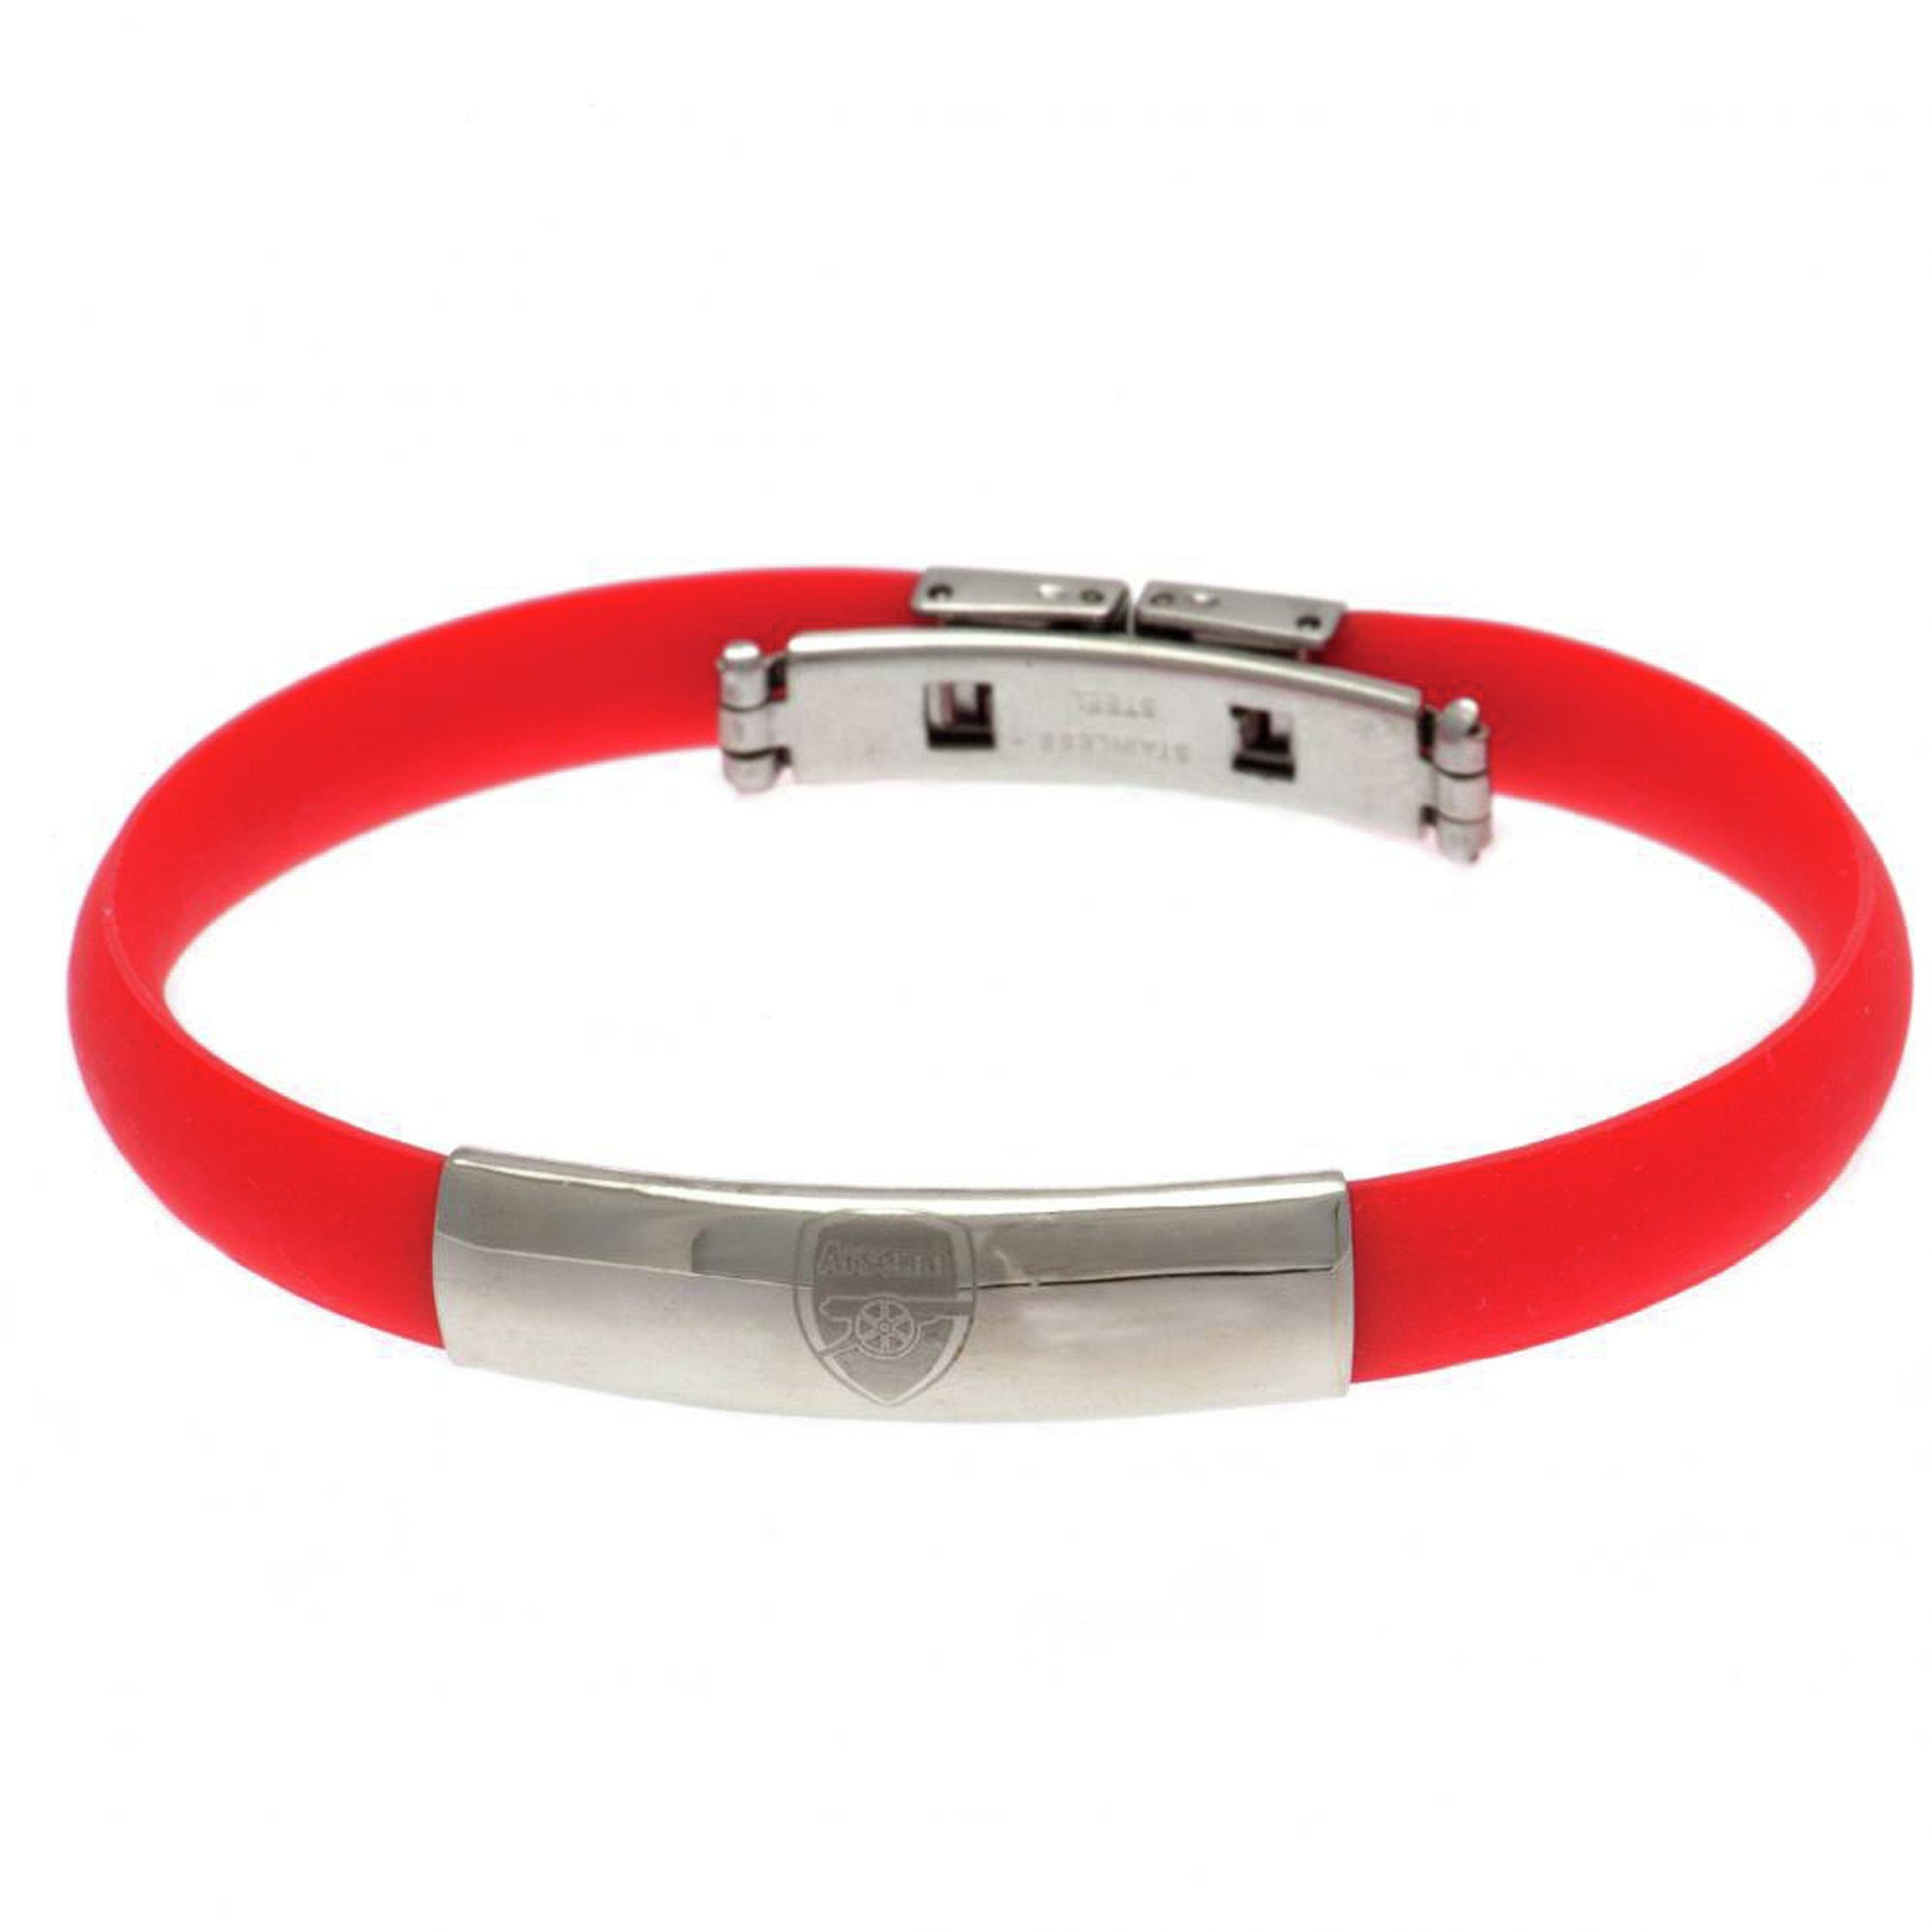 Image of Stainless Steel and Rubber Arsenal Bracelet